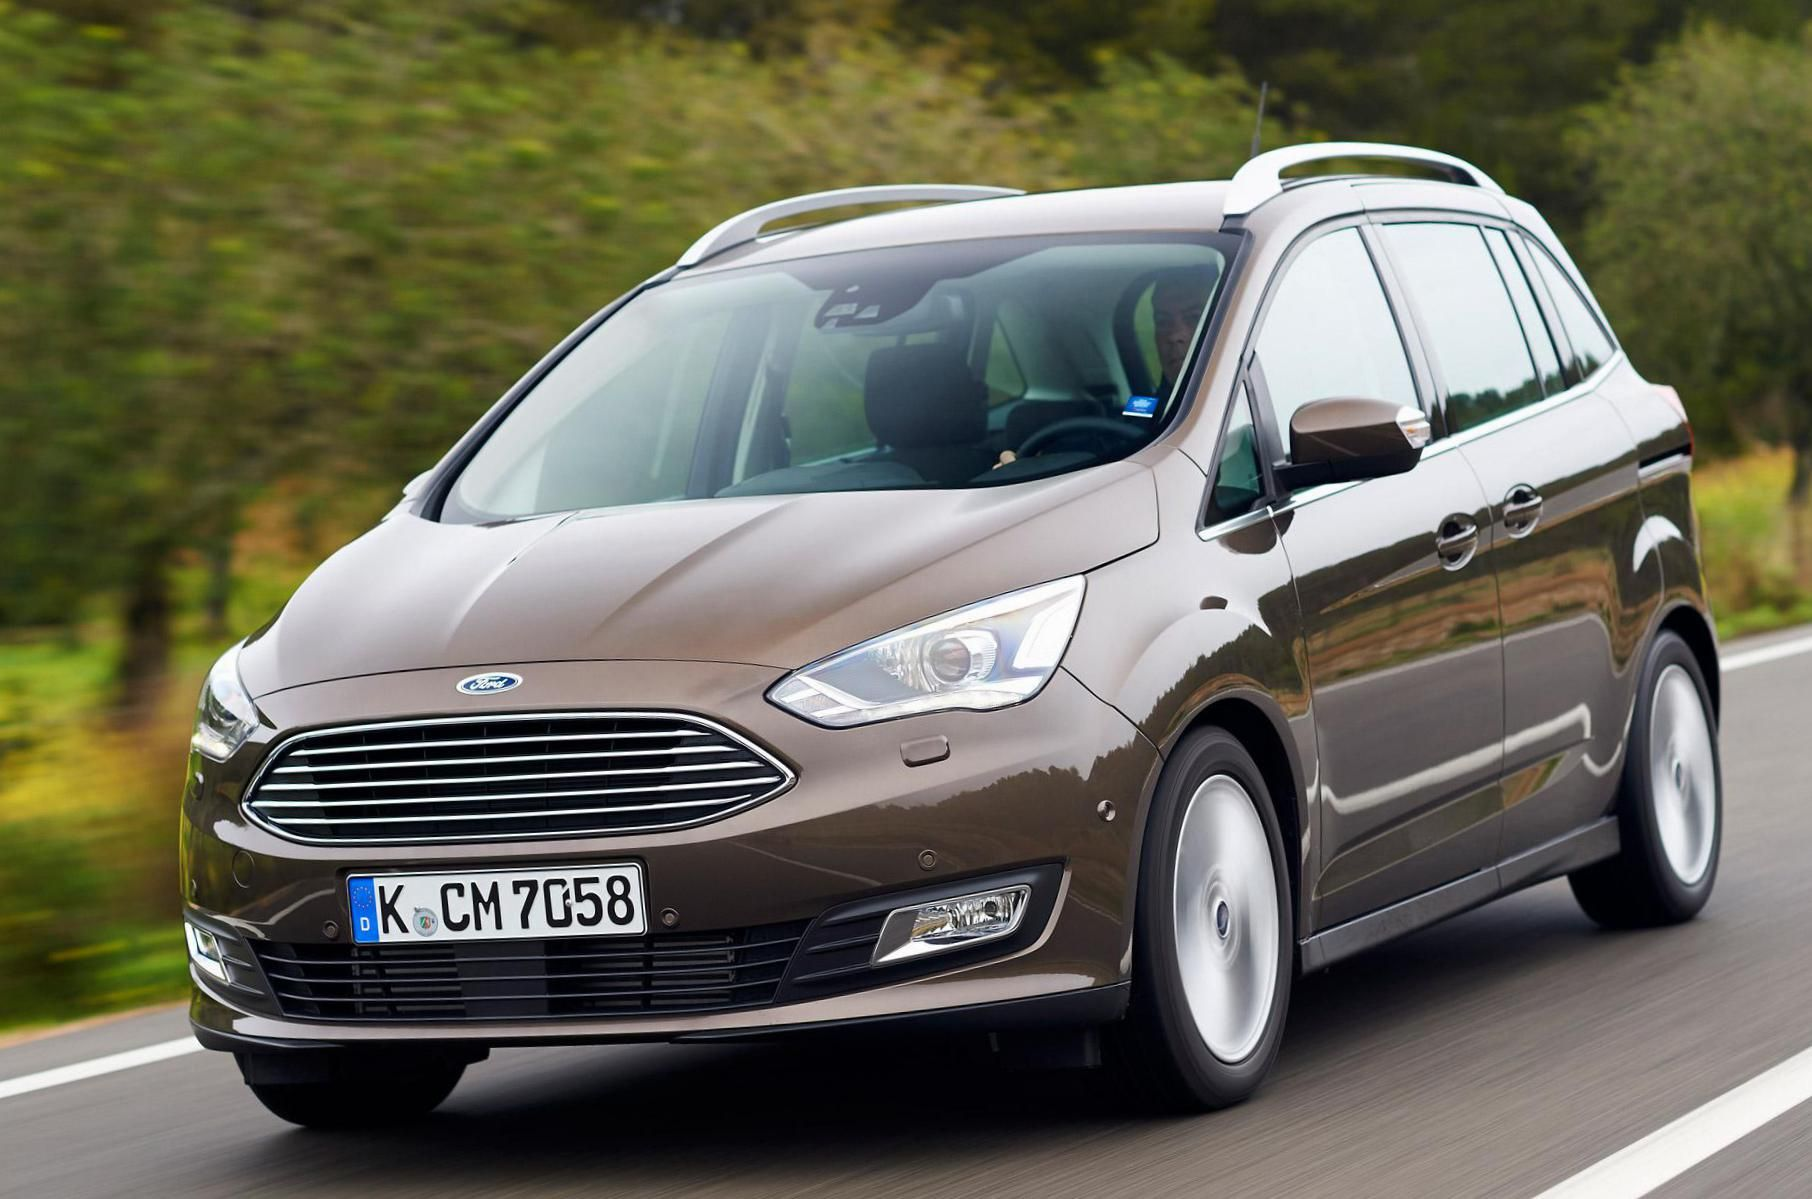 Grand C Max Ford For Sale Http Autotras Com